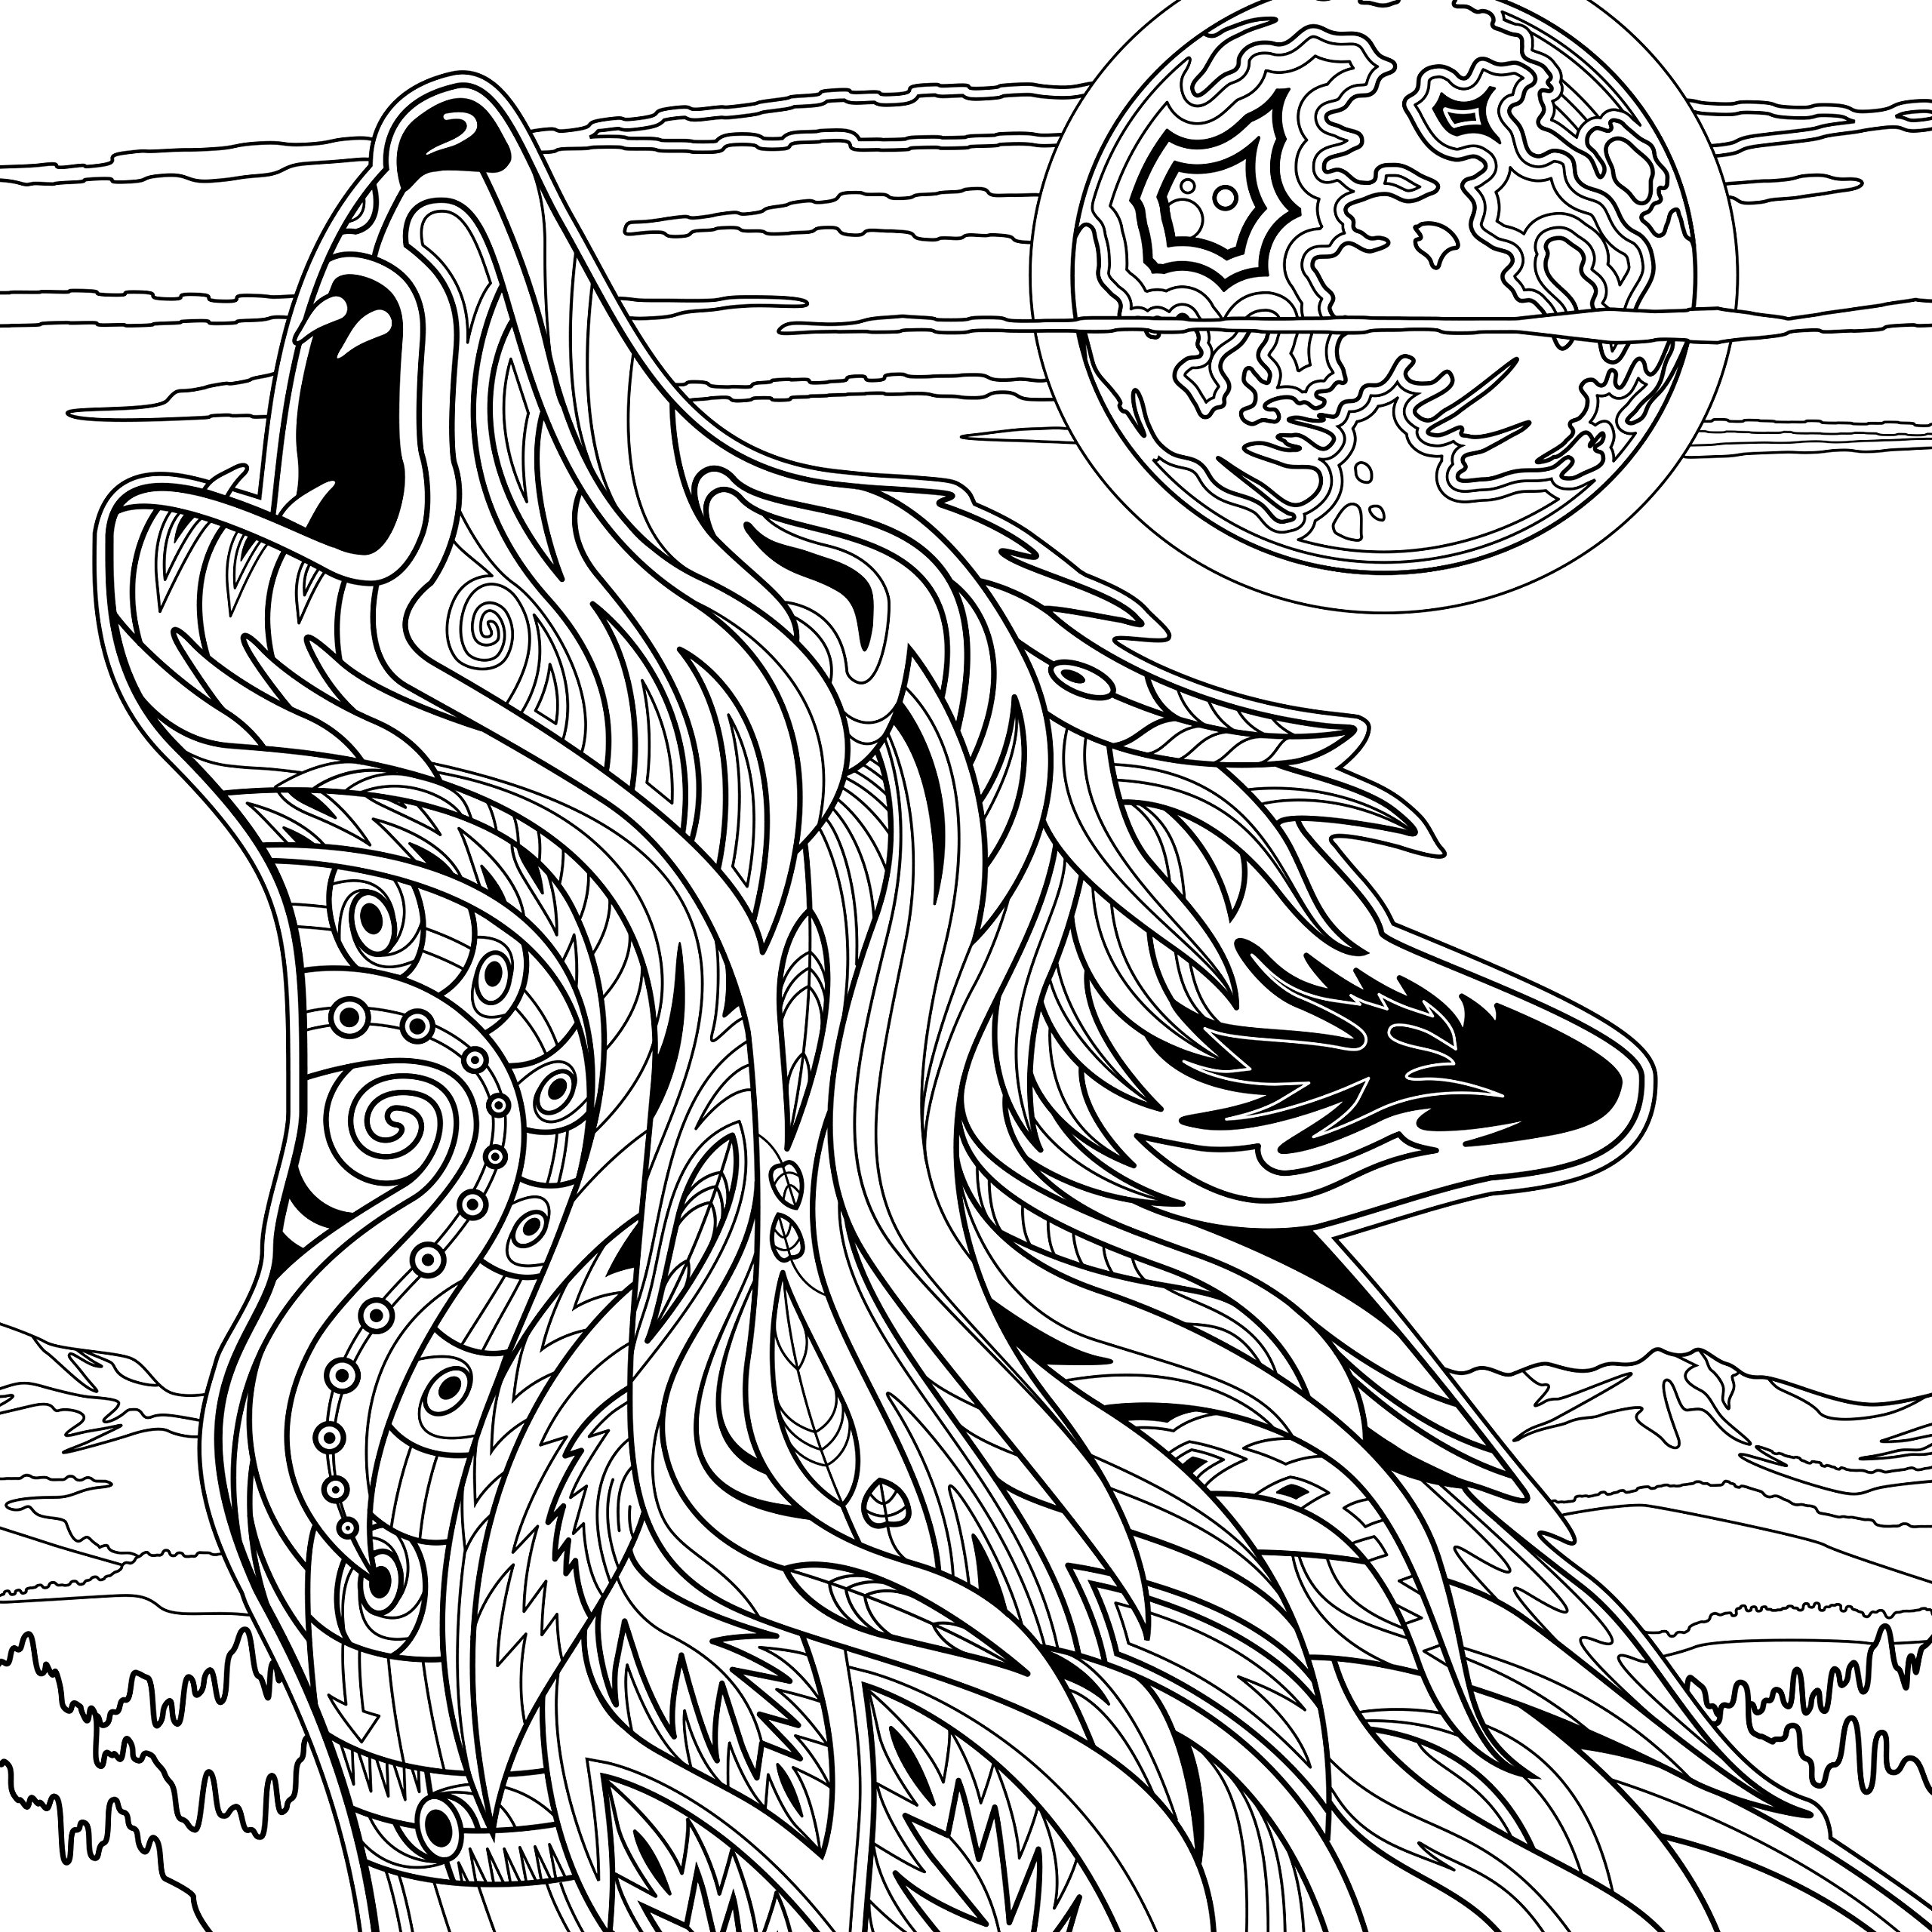 full size coloring pages full size coloring pages for adults at getcoloringscom full pages size coloring